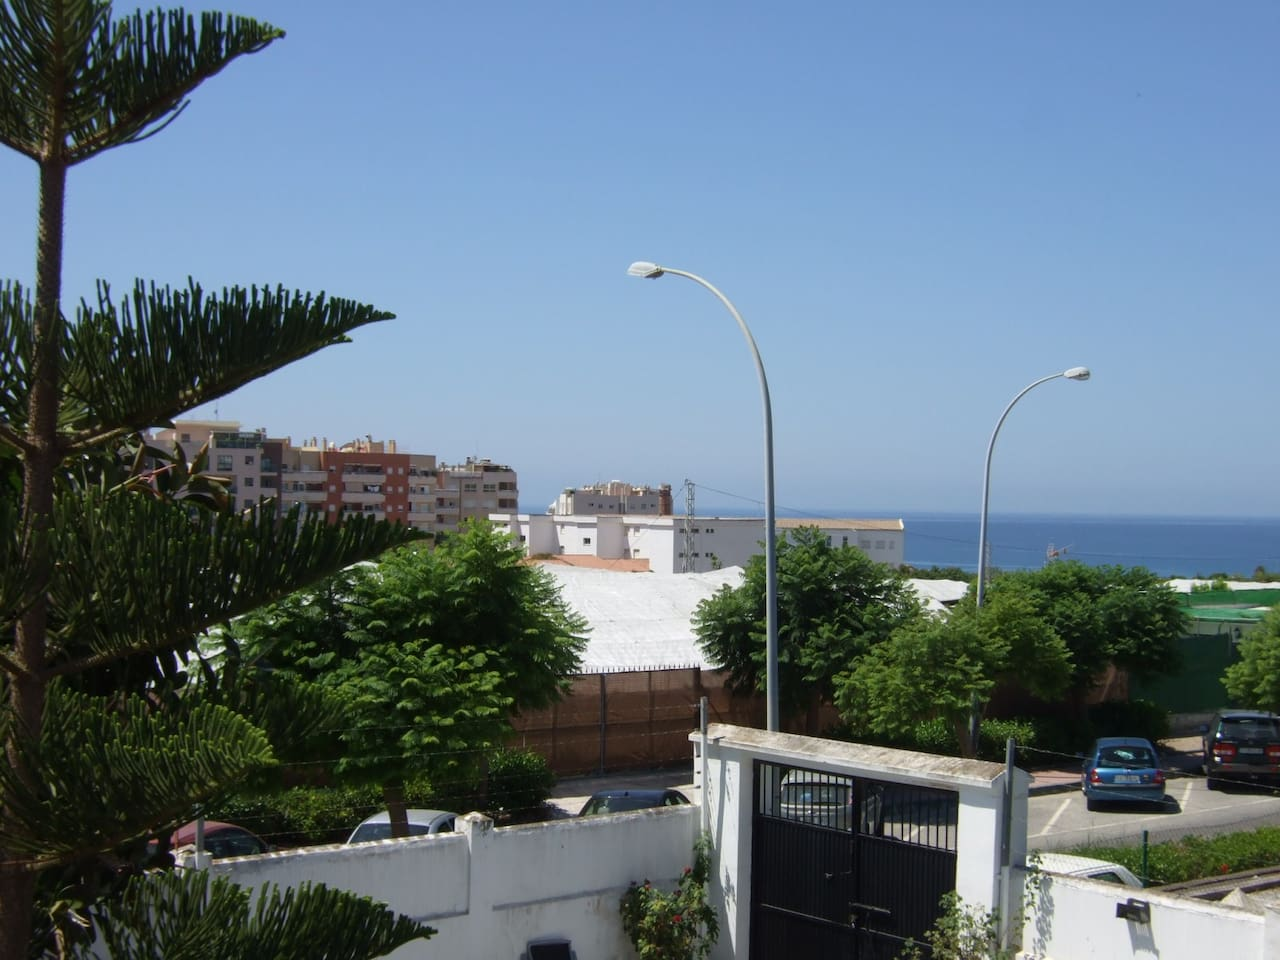 Sea view from studio apartment terrace